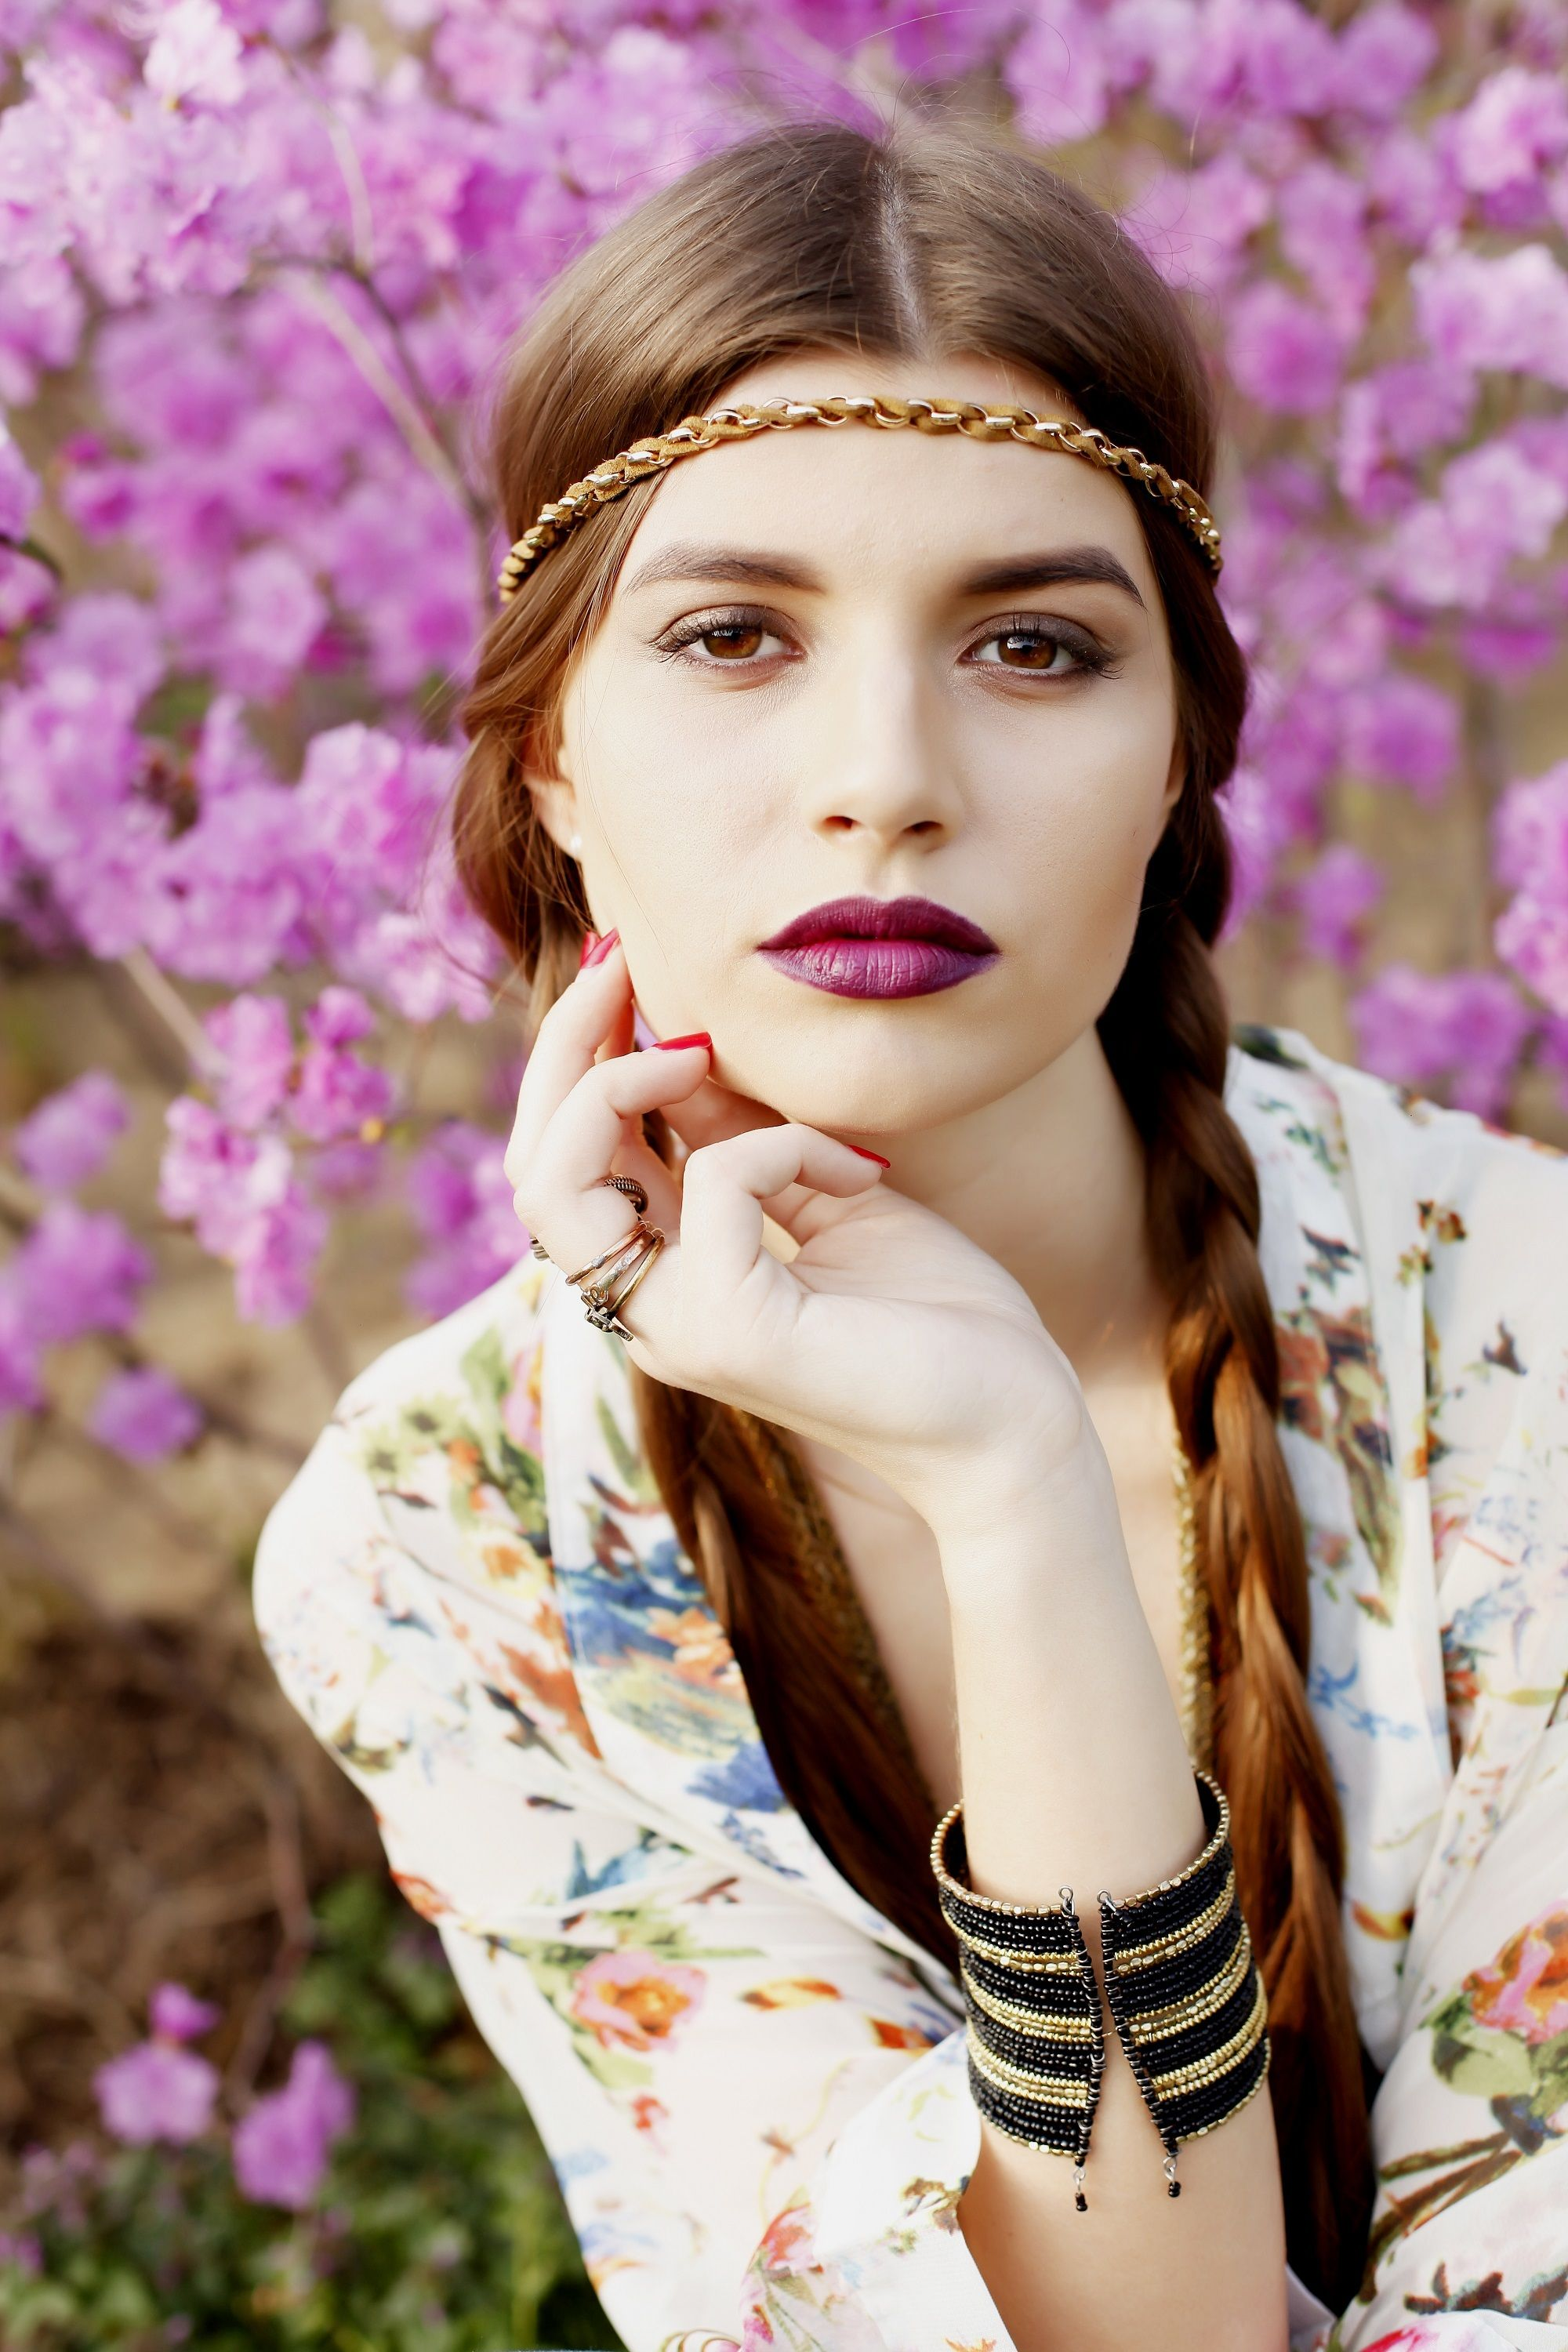 Two braids: Woman with long brown hair in side braids and headband